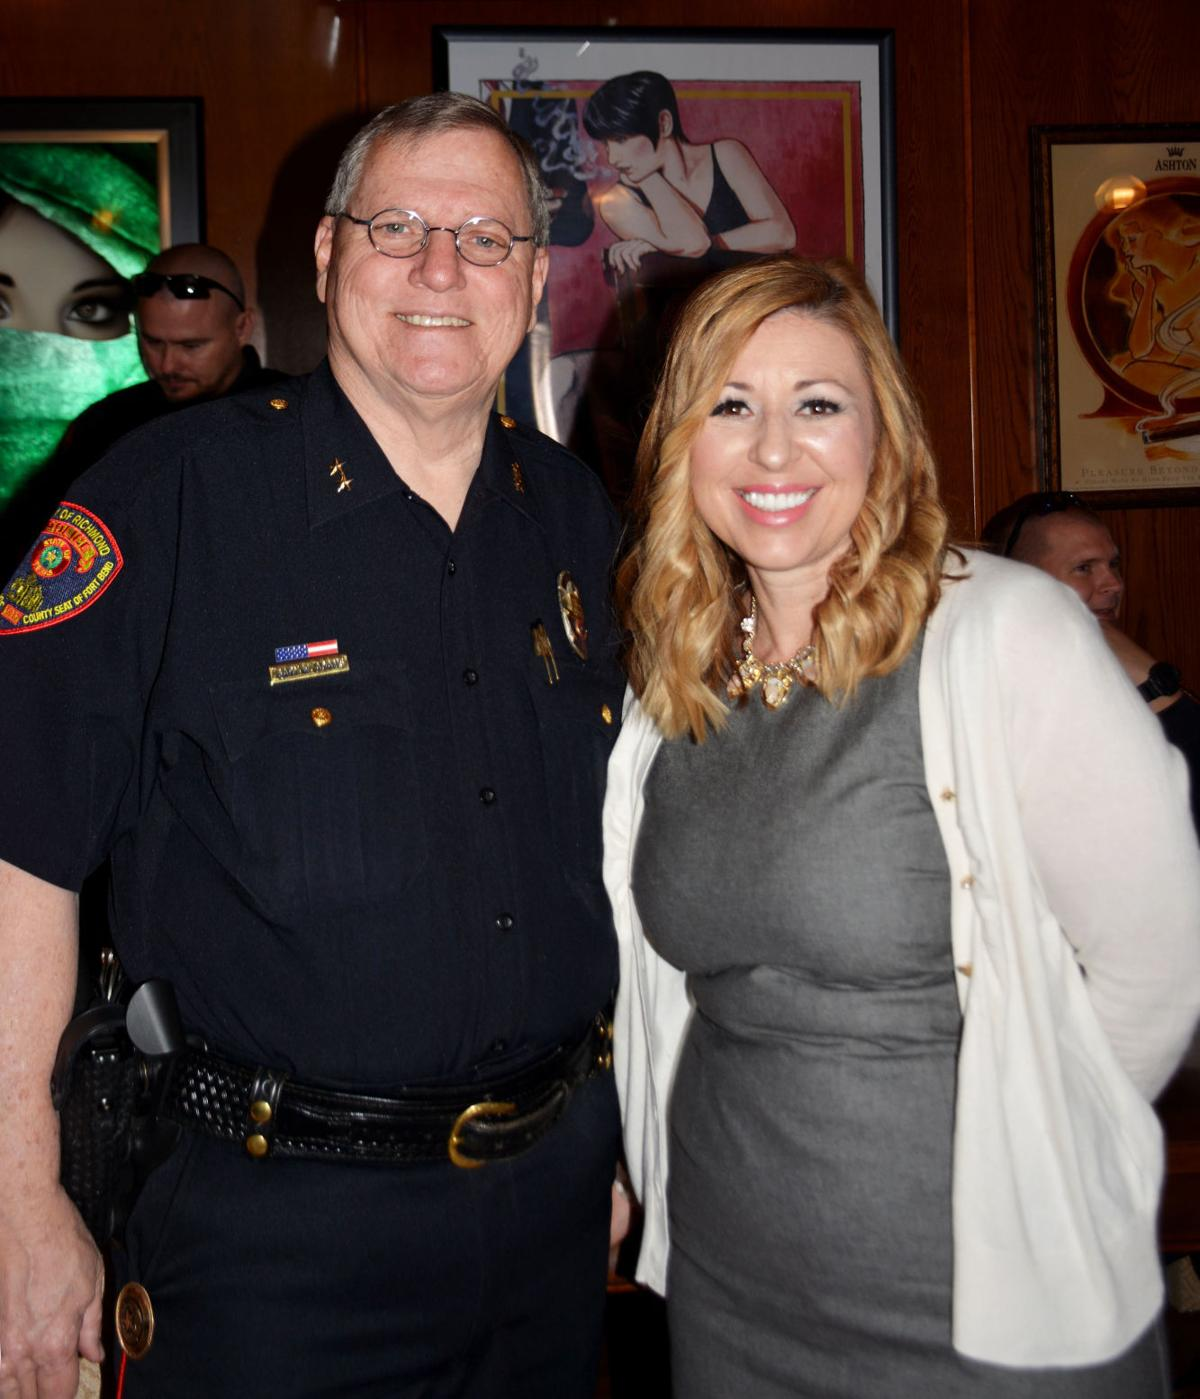 Meeting the police chief